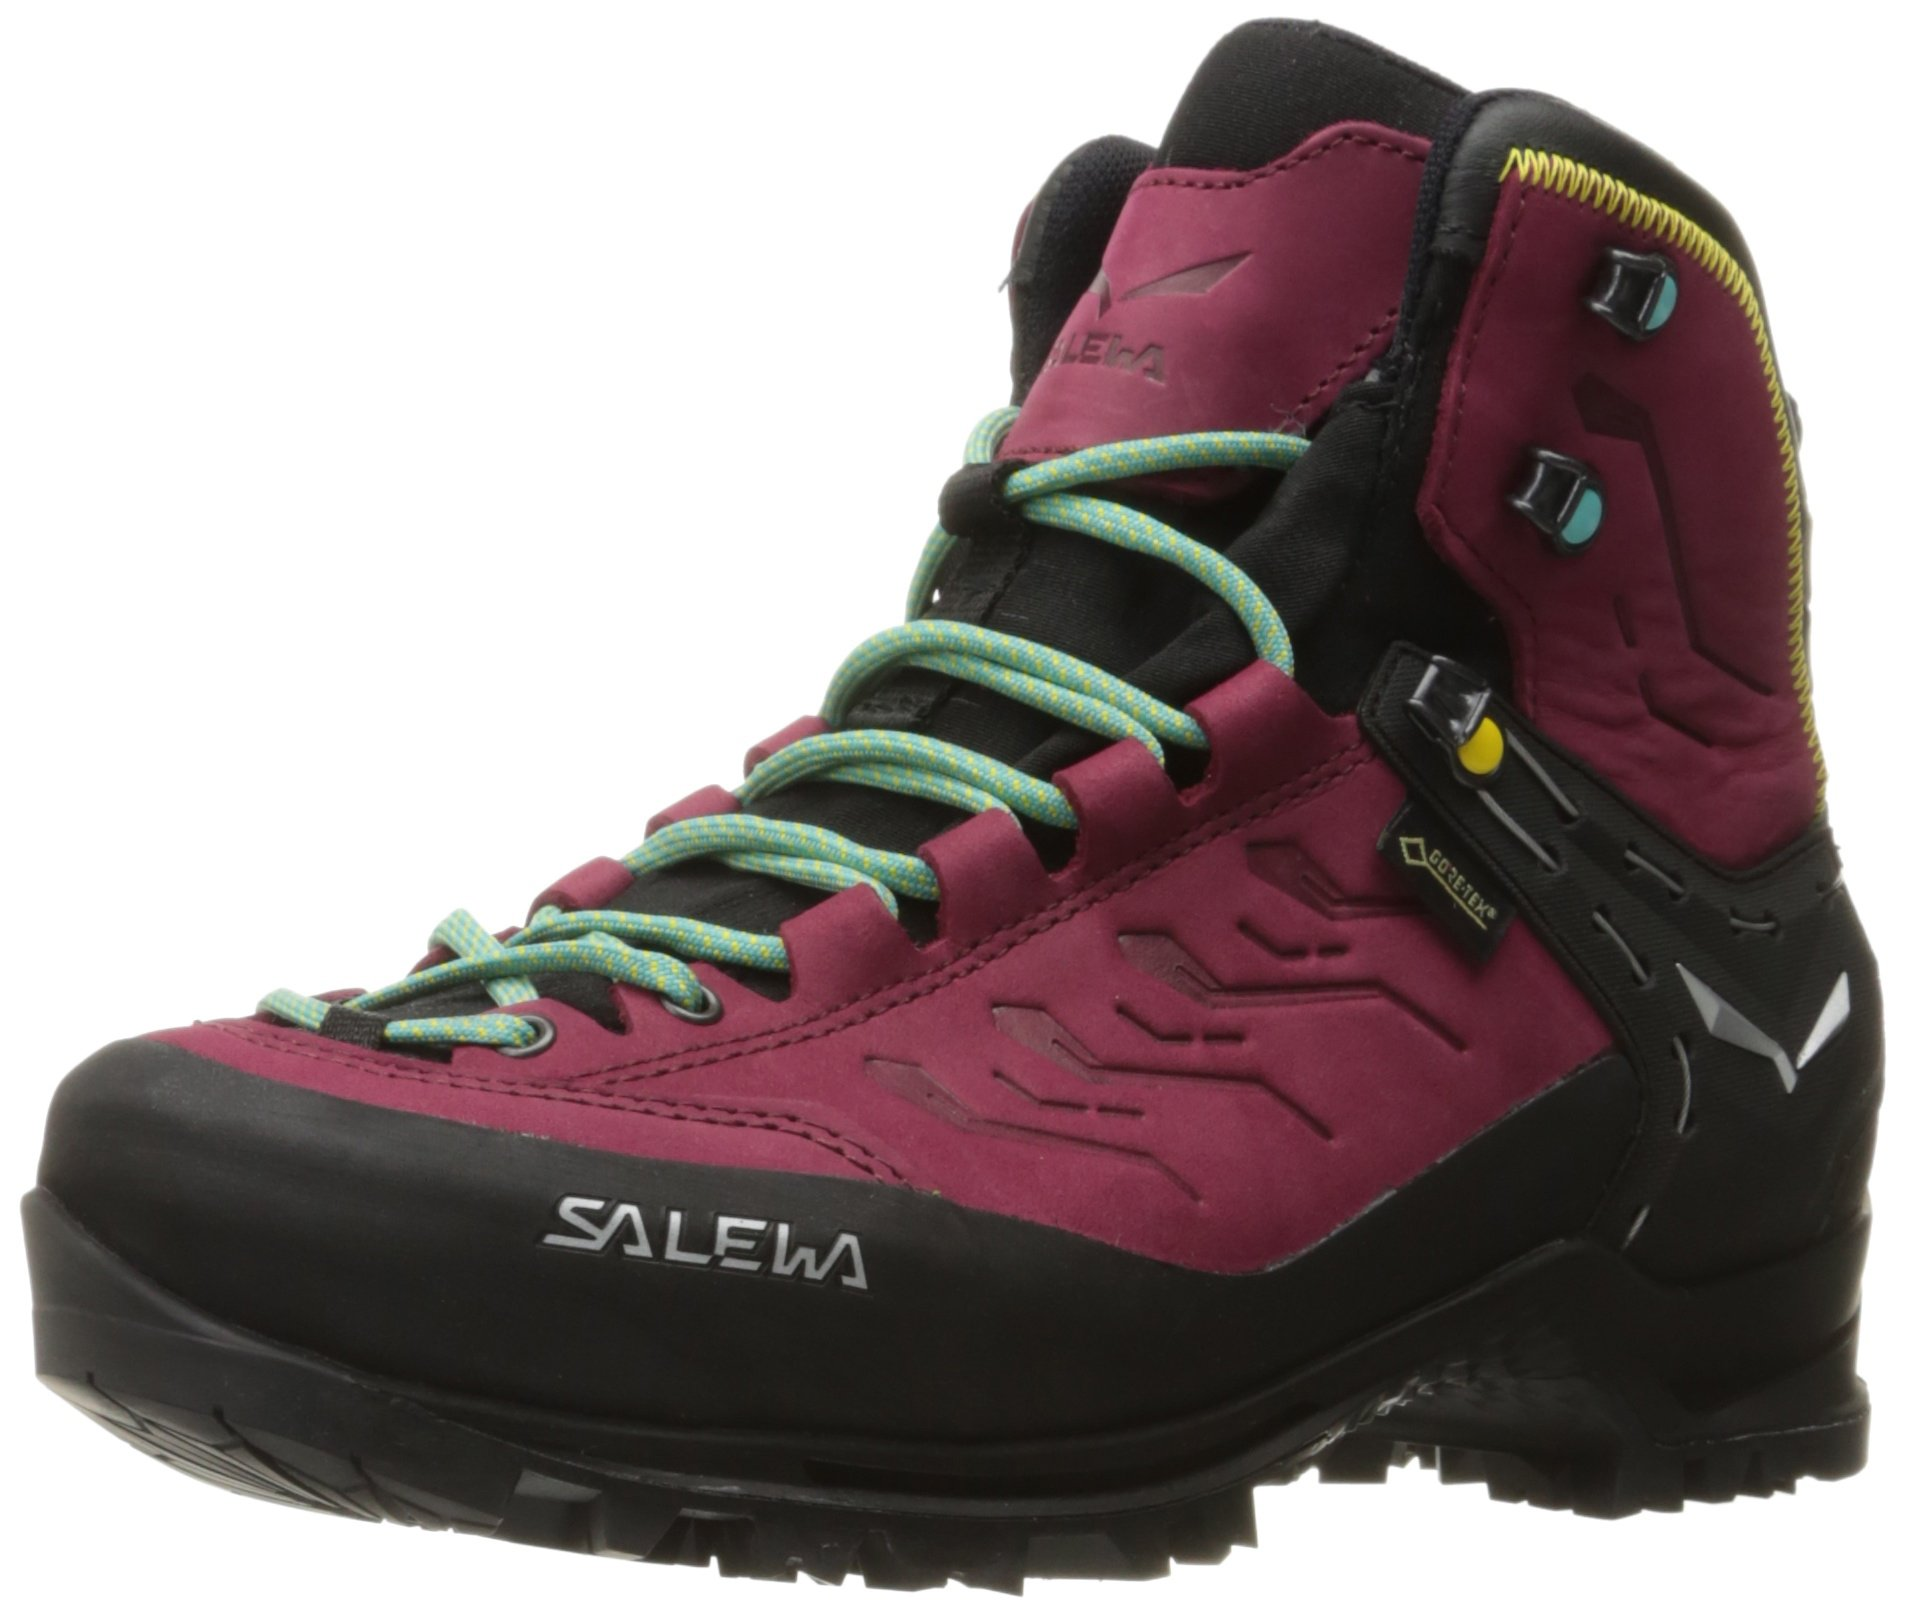 Salewa Women's Rapace GTX Mountaineering Boot, Tawny Port/Limelight, 6